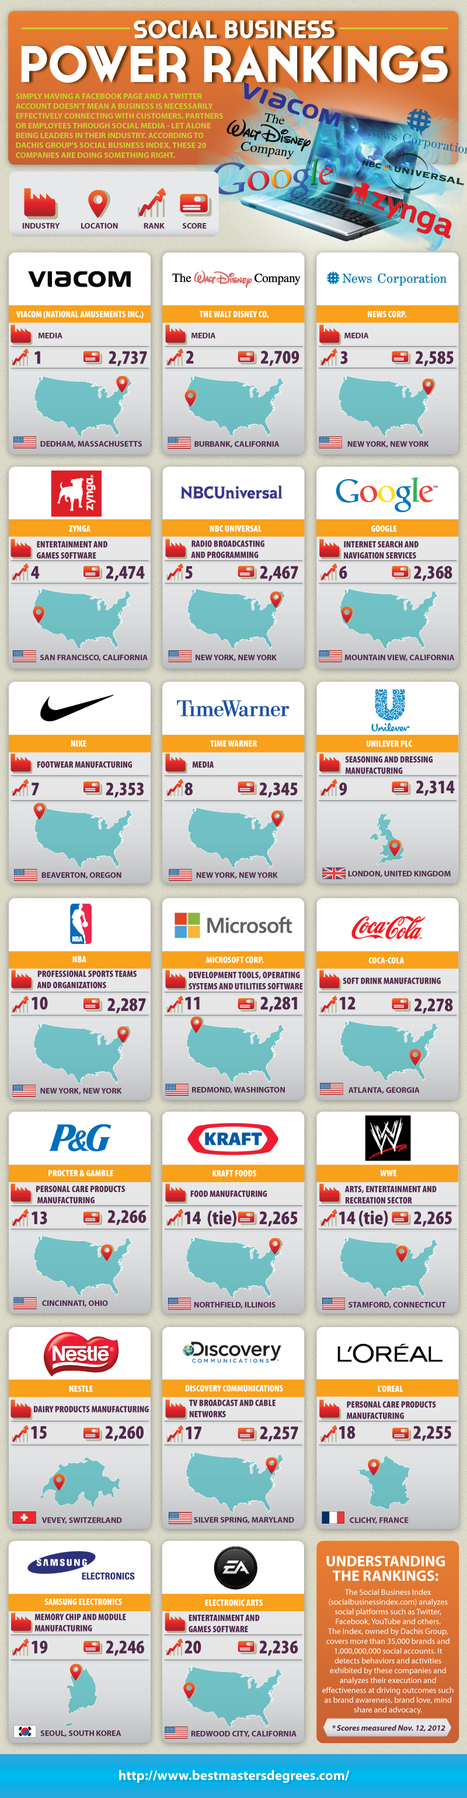 Top 20 Most Social Brands [INFOGRAPHIC] | DV8 Digital Marketing Tips and Insight | Scoop.it